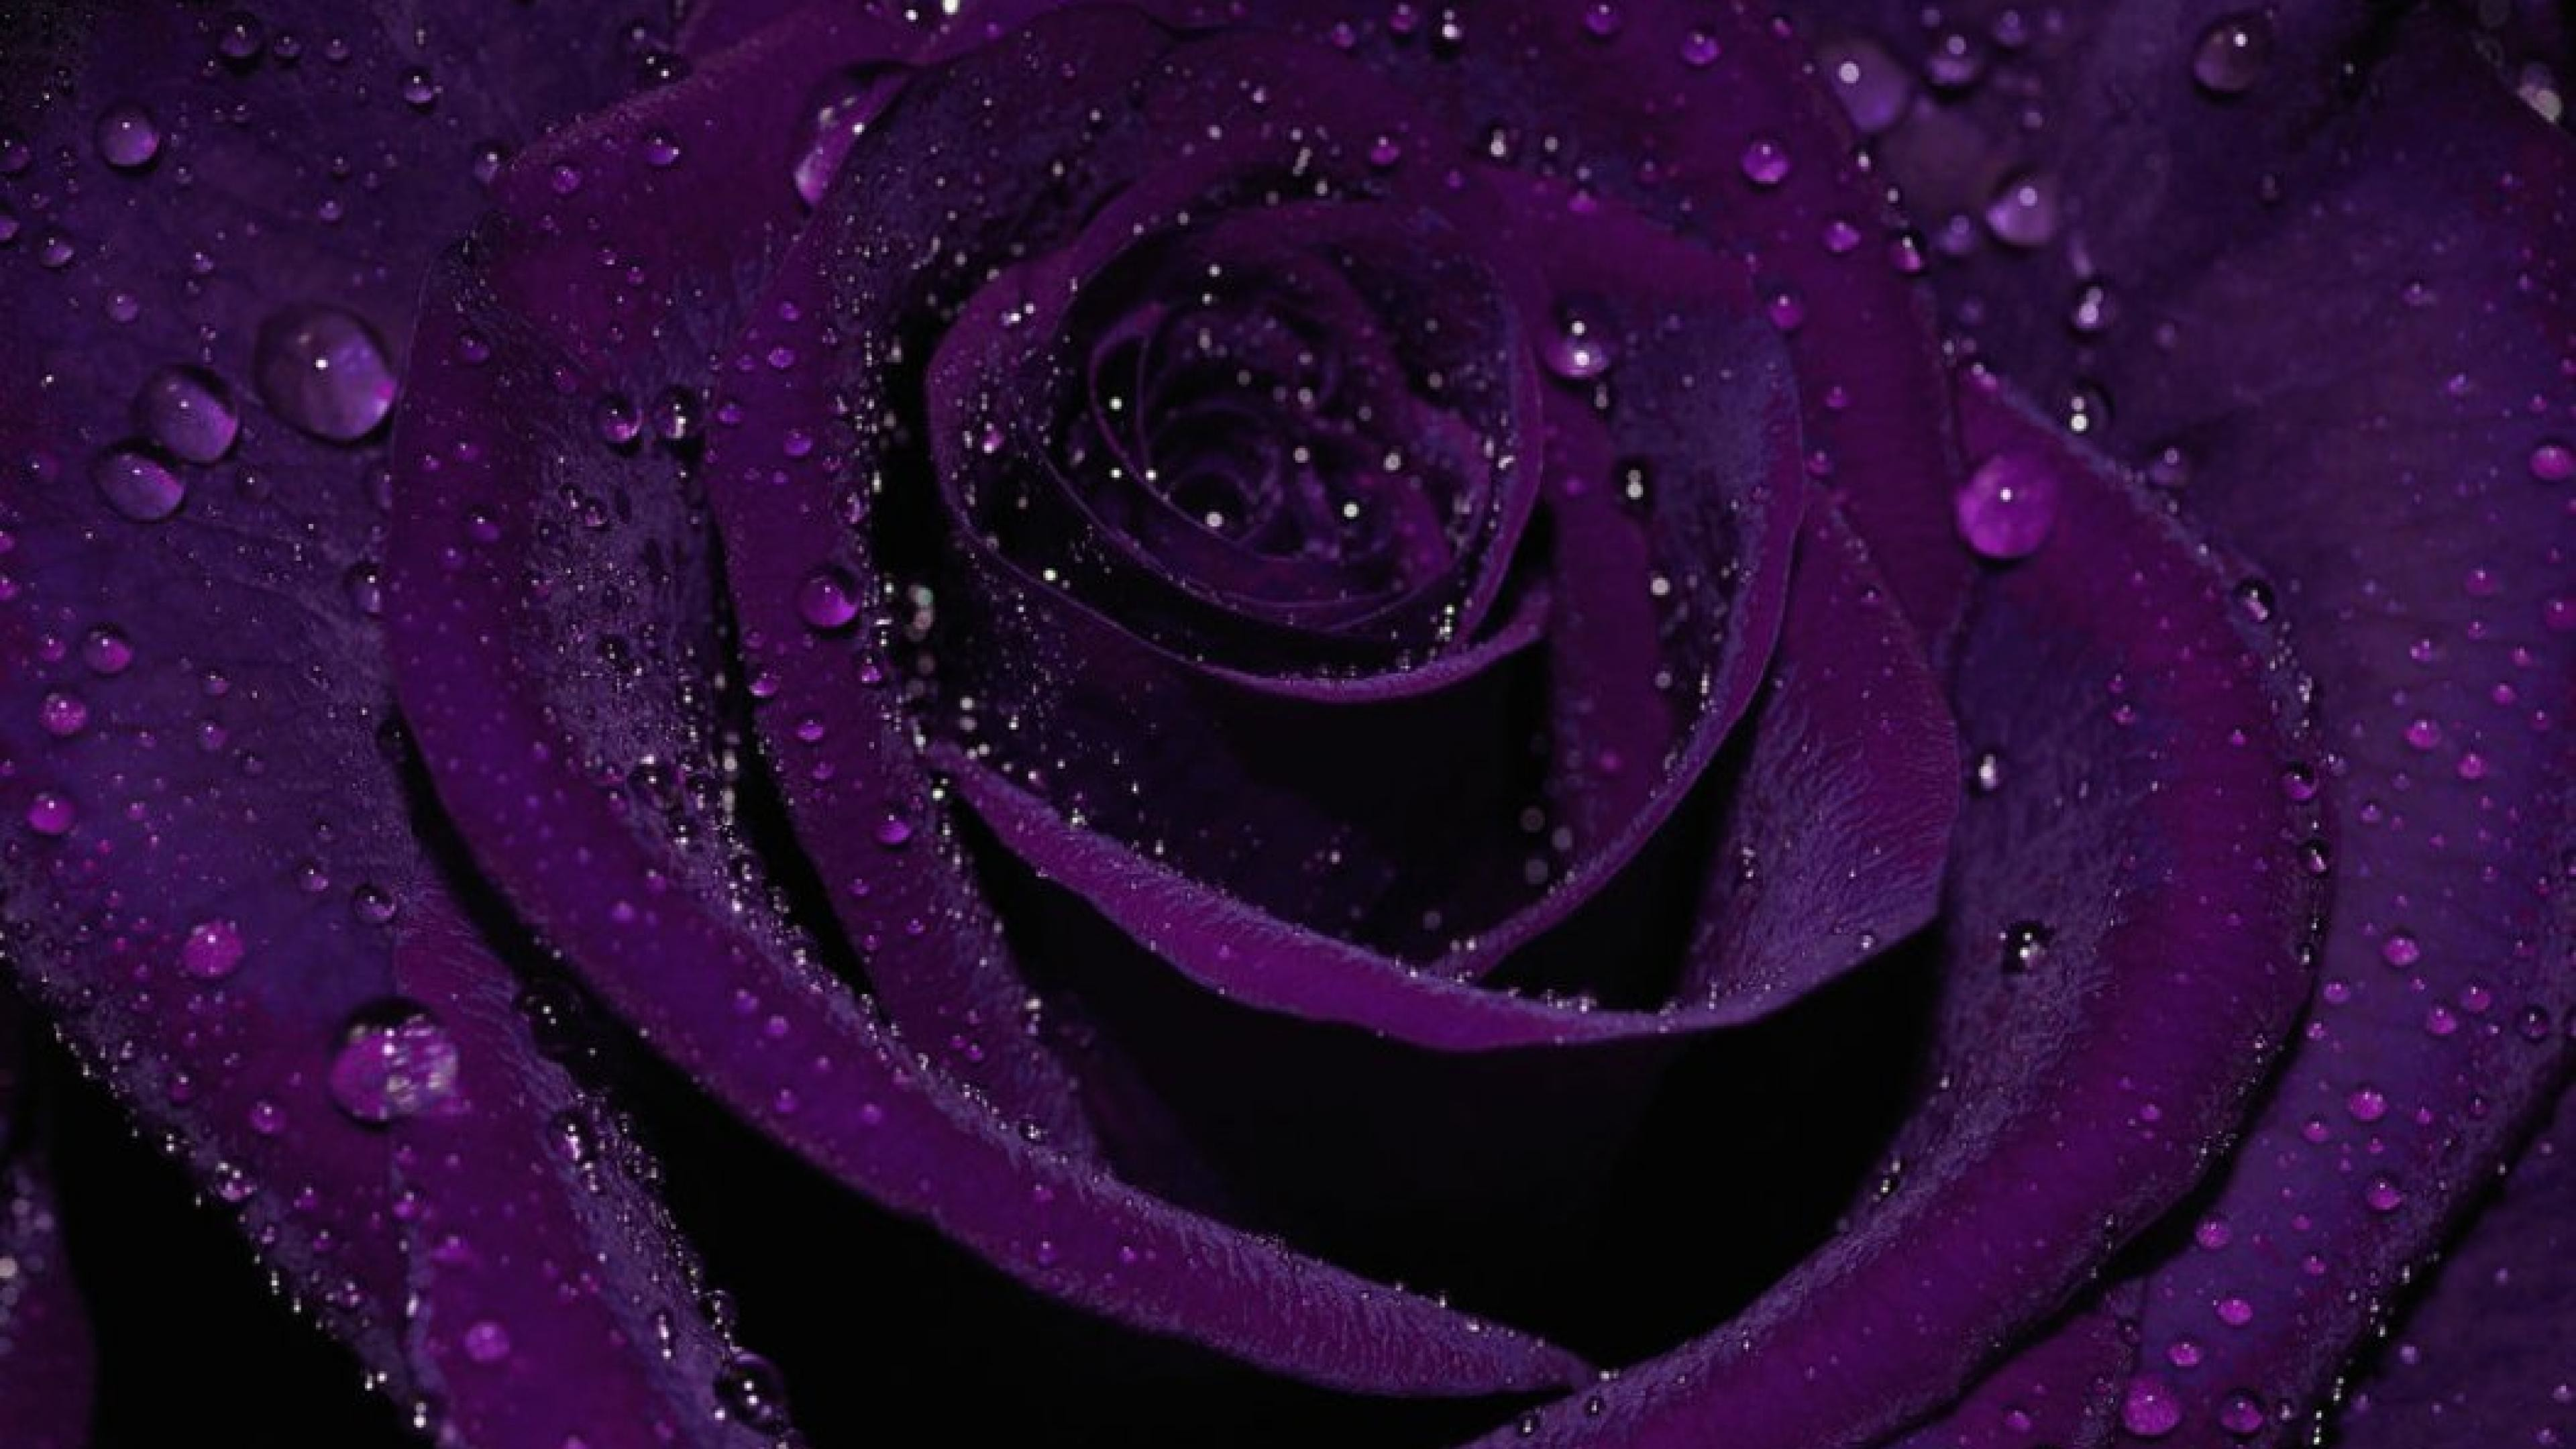 Purple Roses Wallpaper ·① WallpaperTag